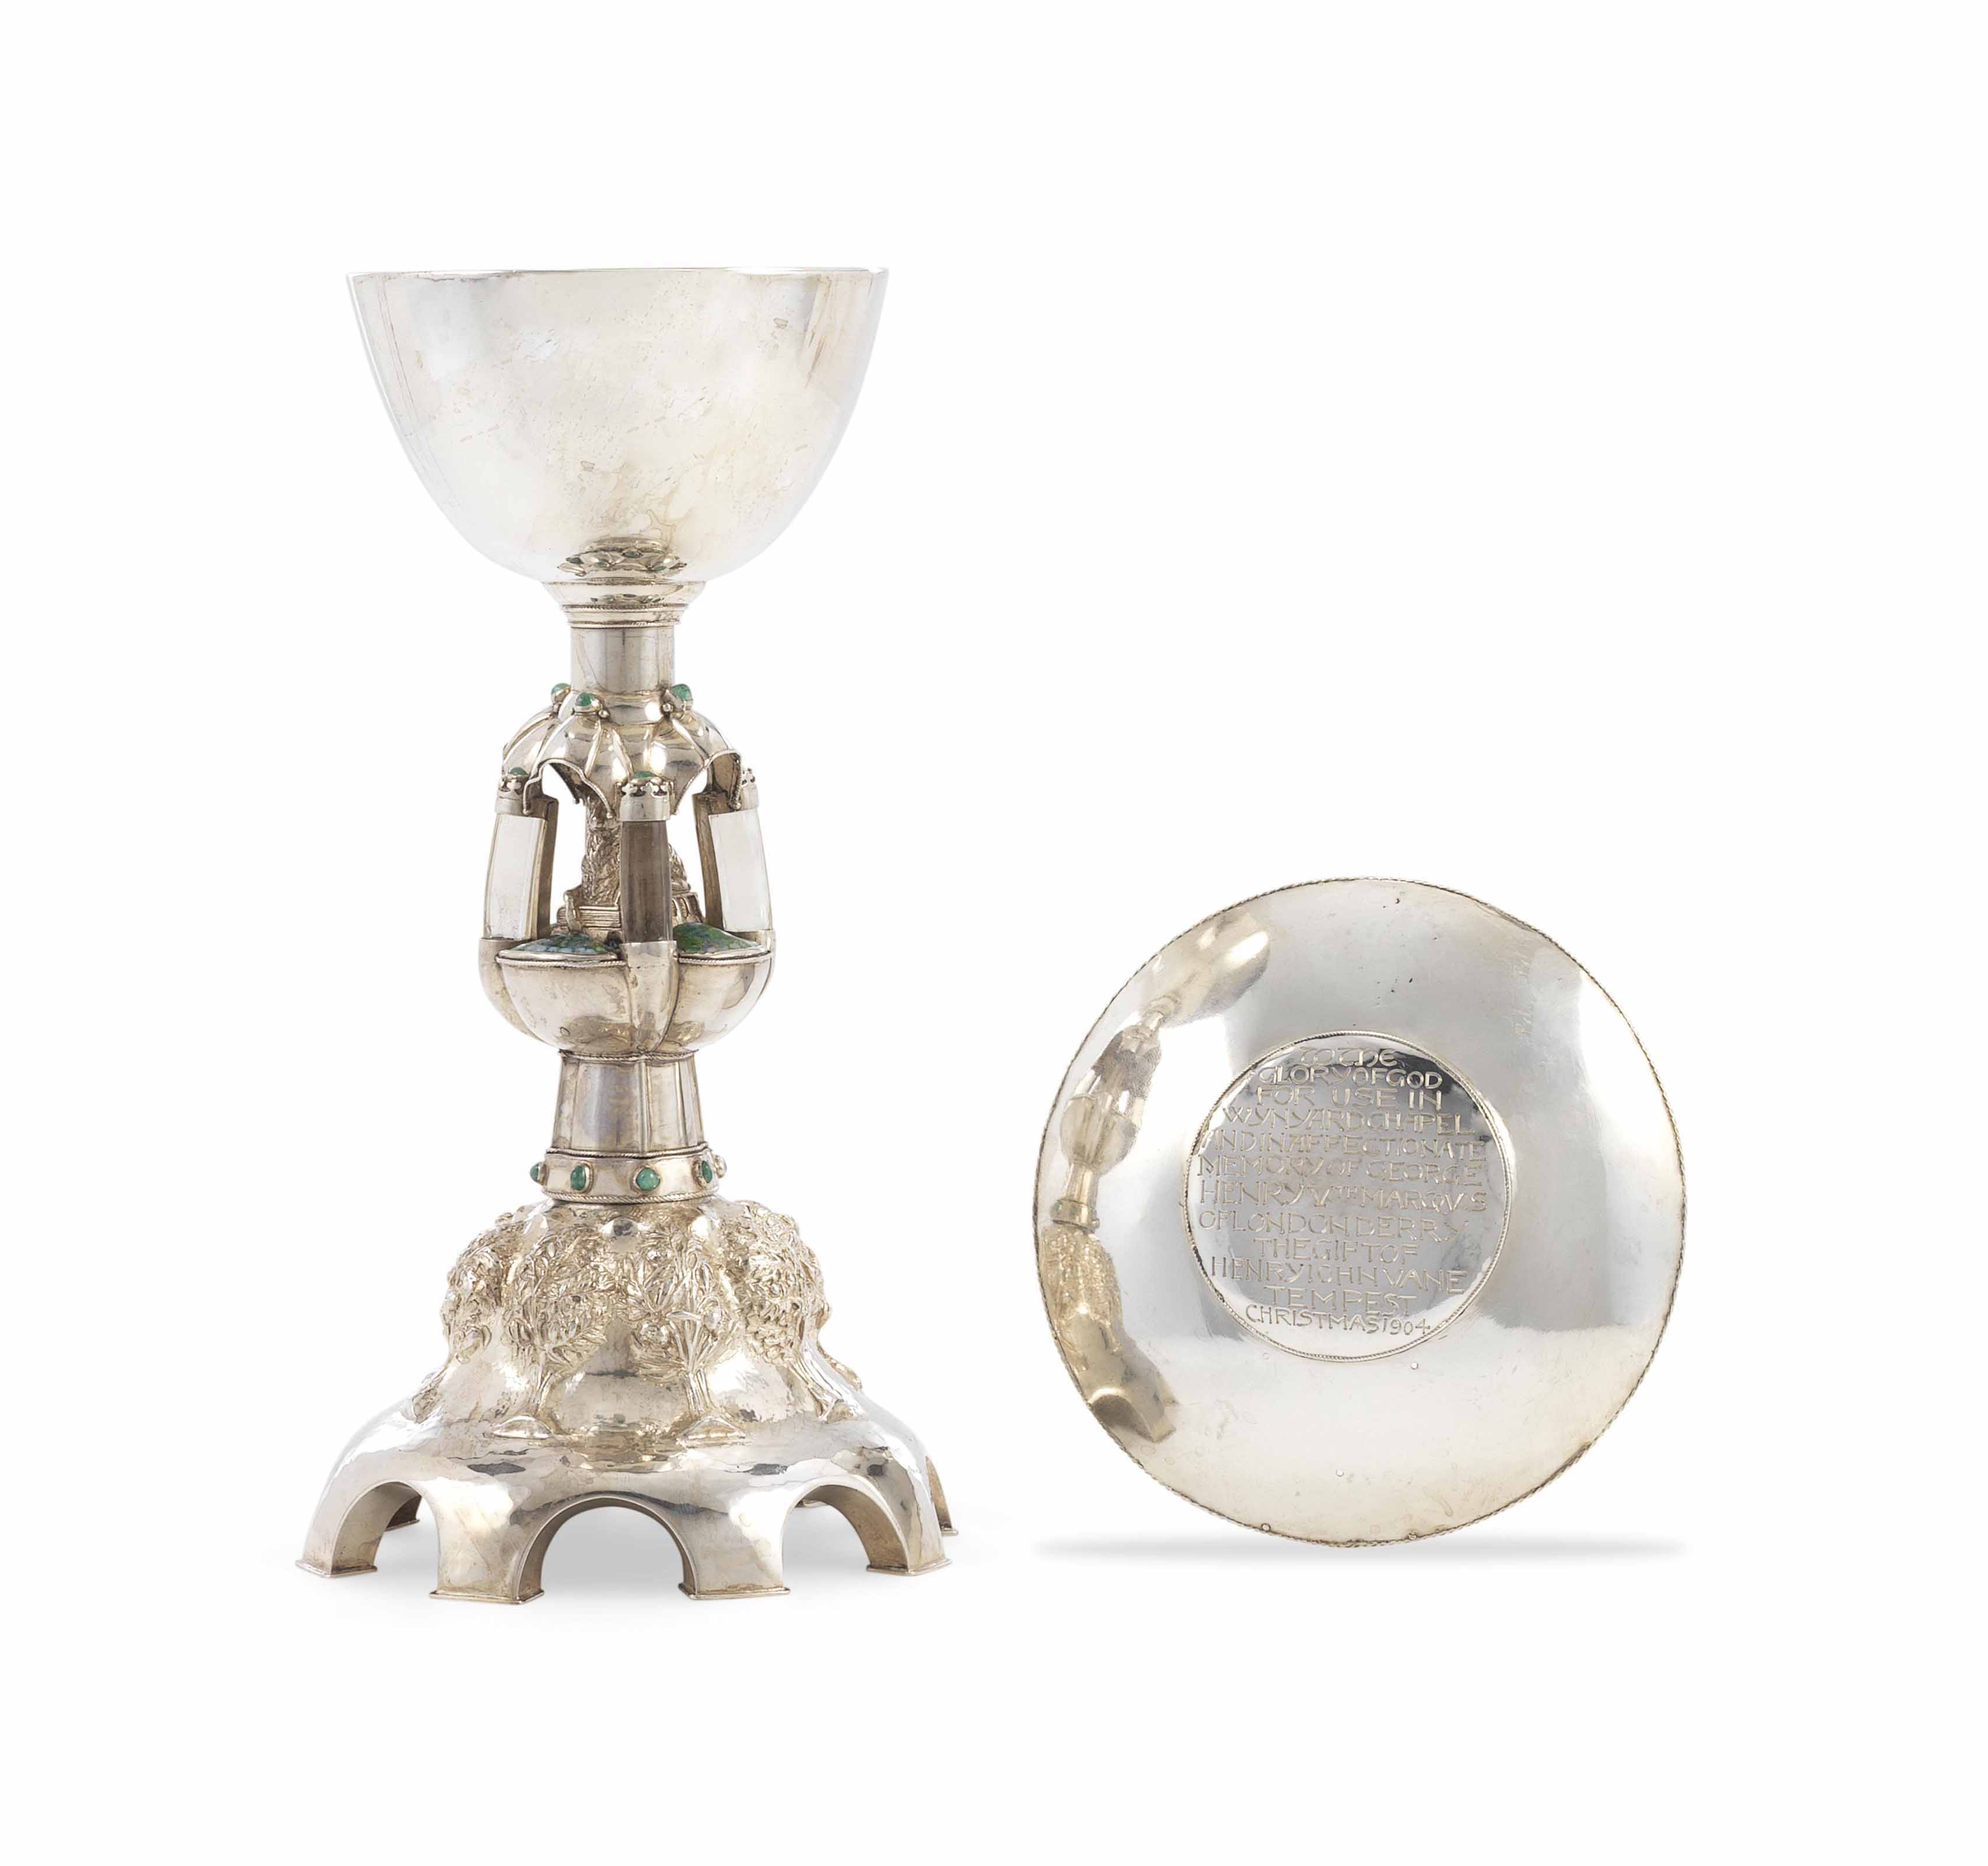 AN ARTS AND CRAFTS HARDSTONE-MOUNTED ENAMELLED SILVER CHALICE AND PATEN